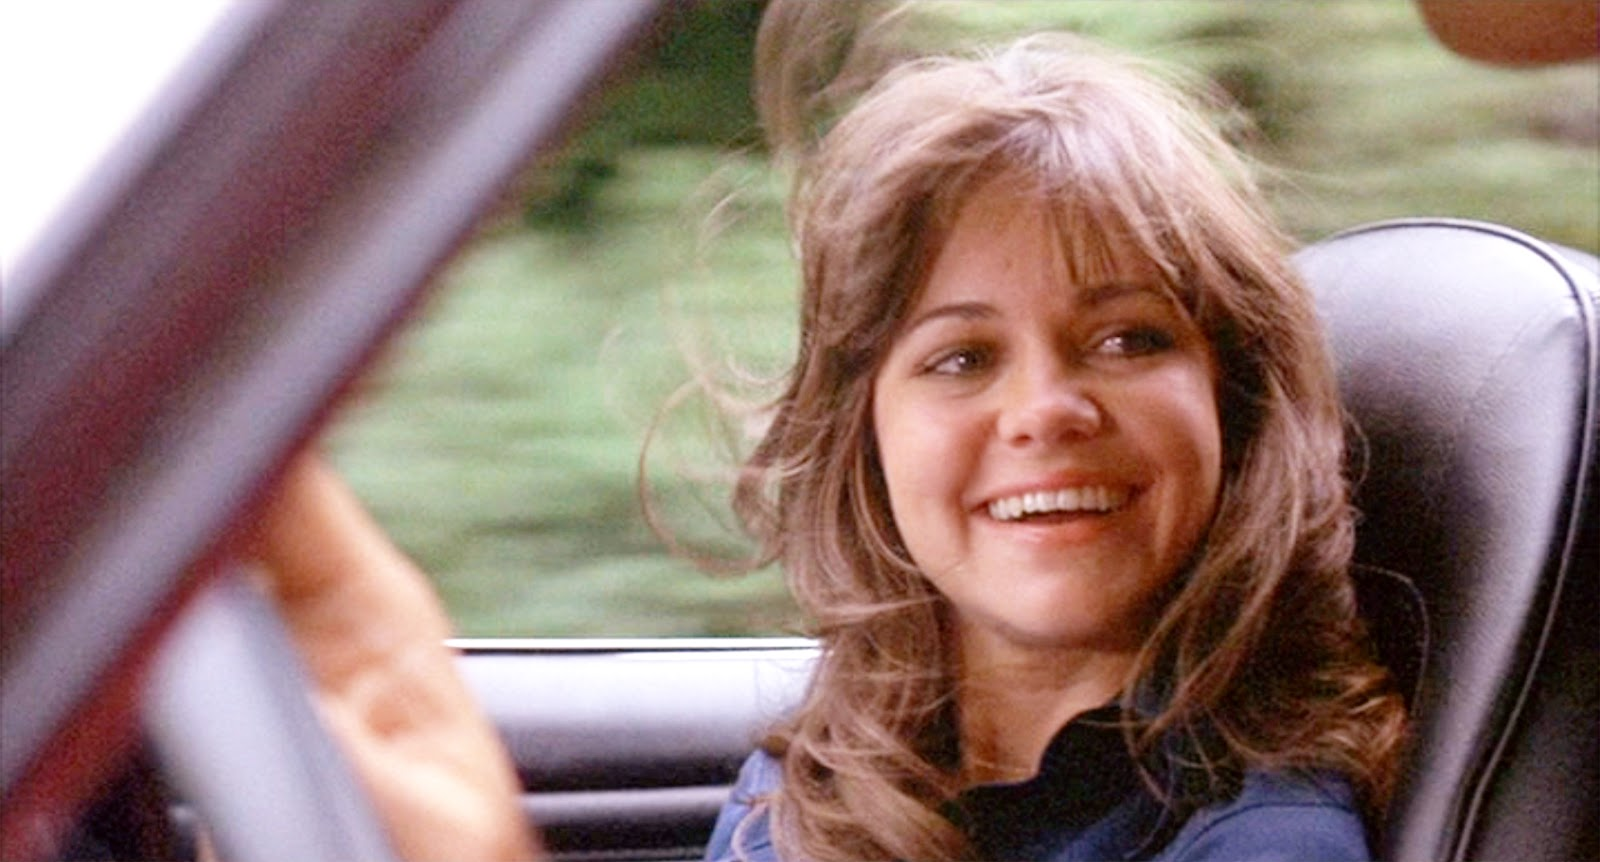 Is Sally Field Hot Or Cute